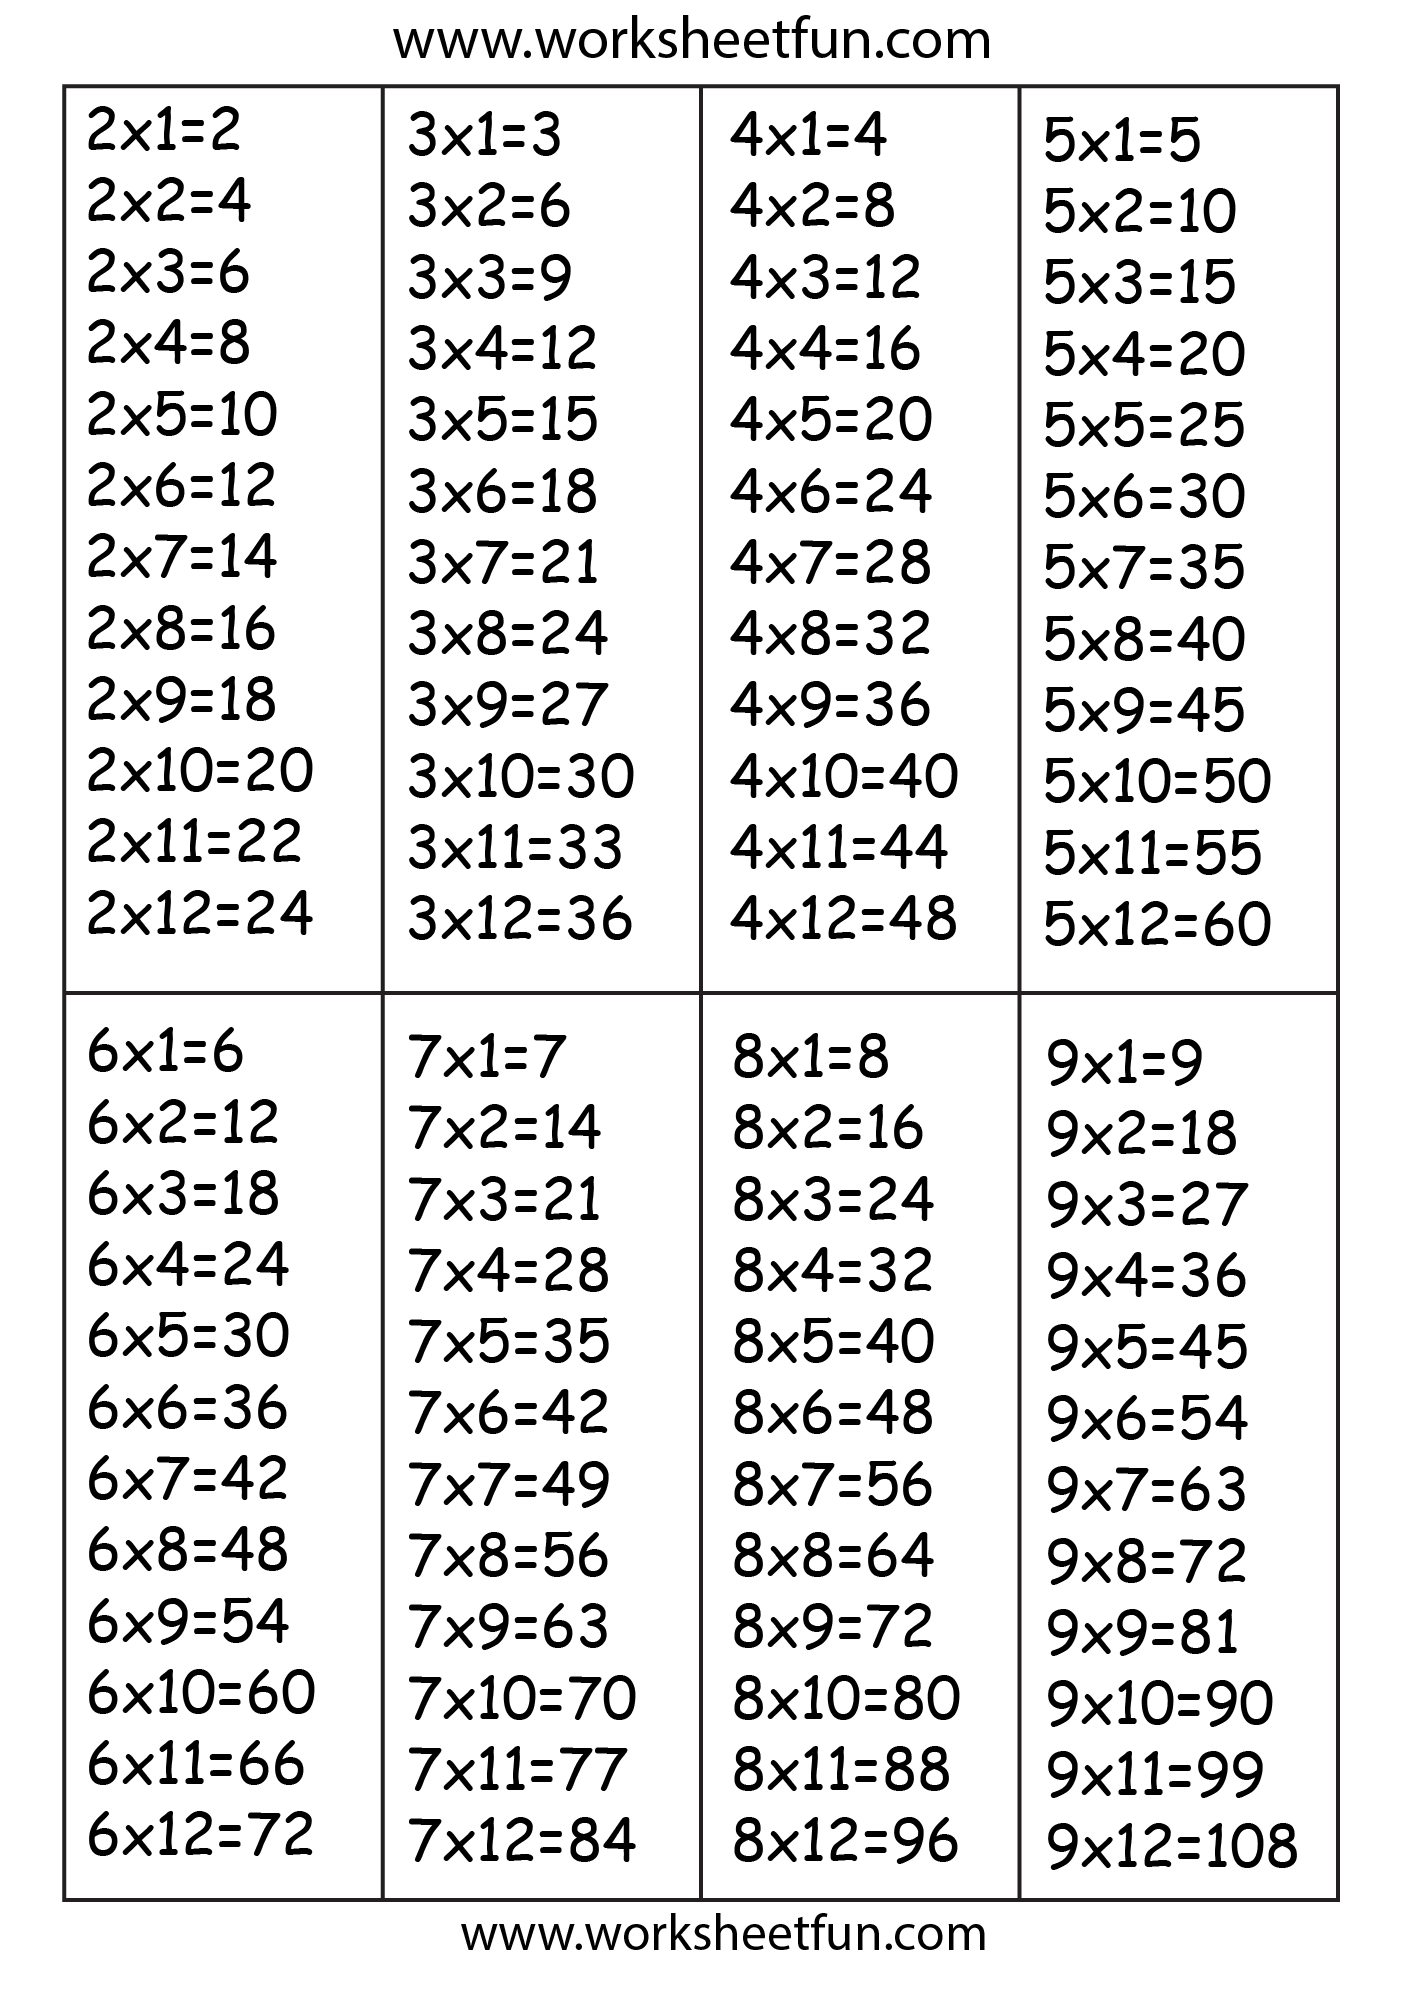 Multiplication Table Worksheets 5 Times Table 1 780